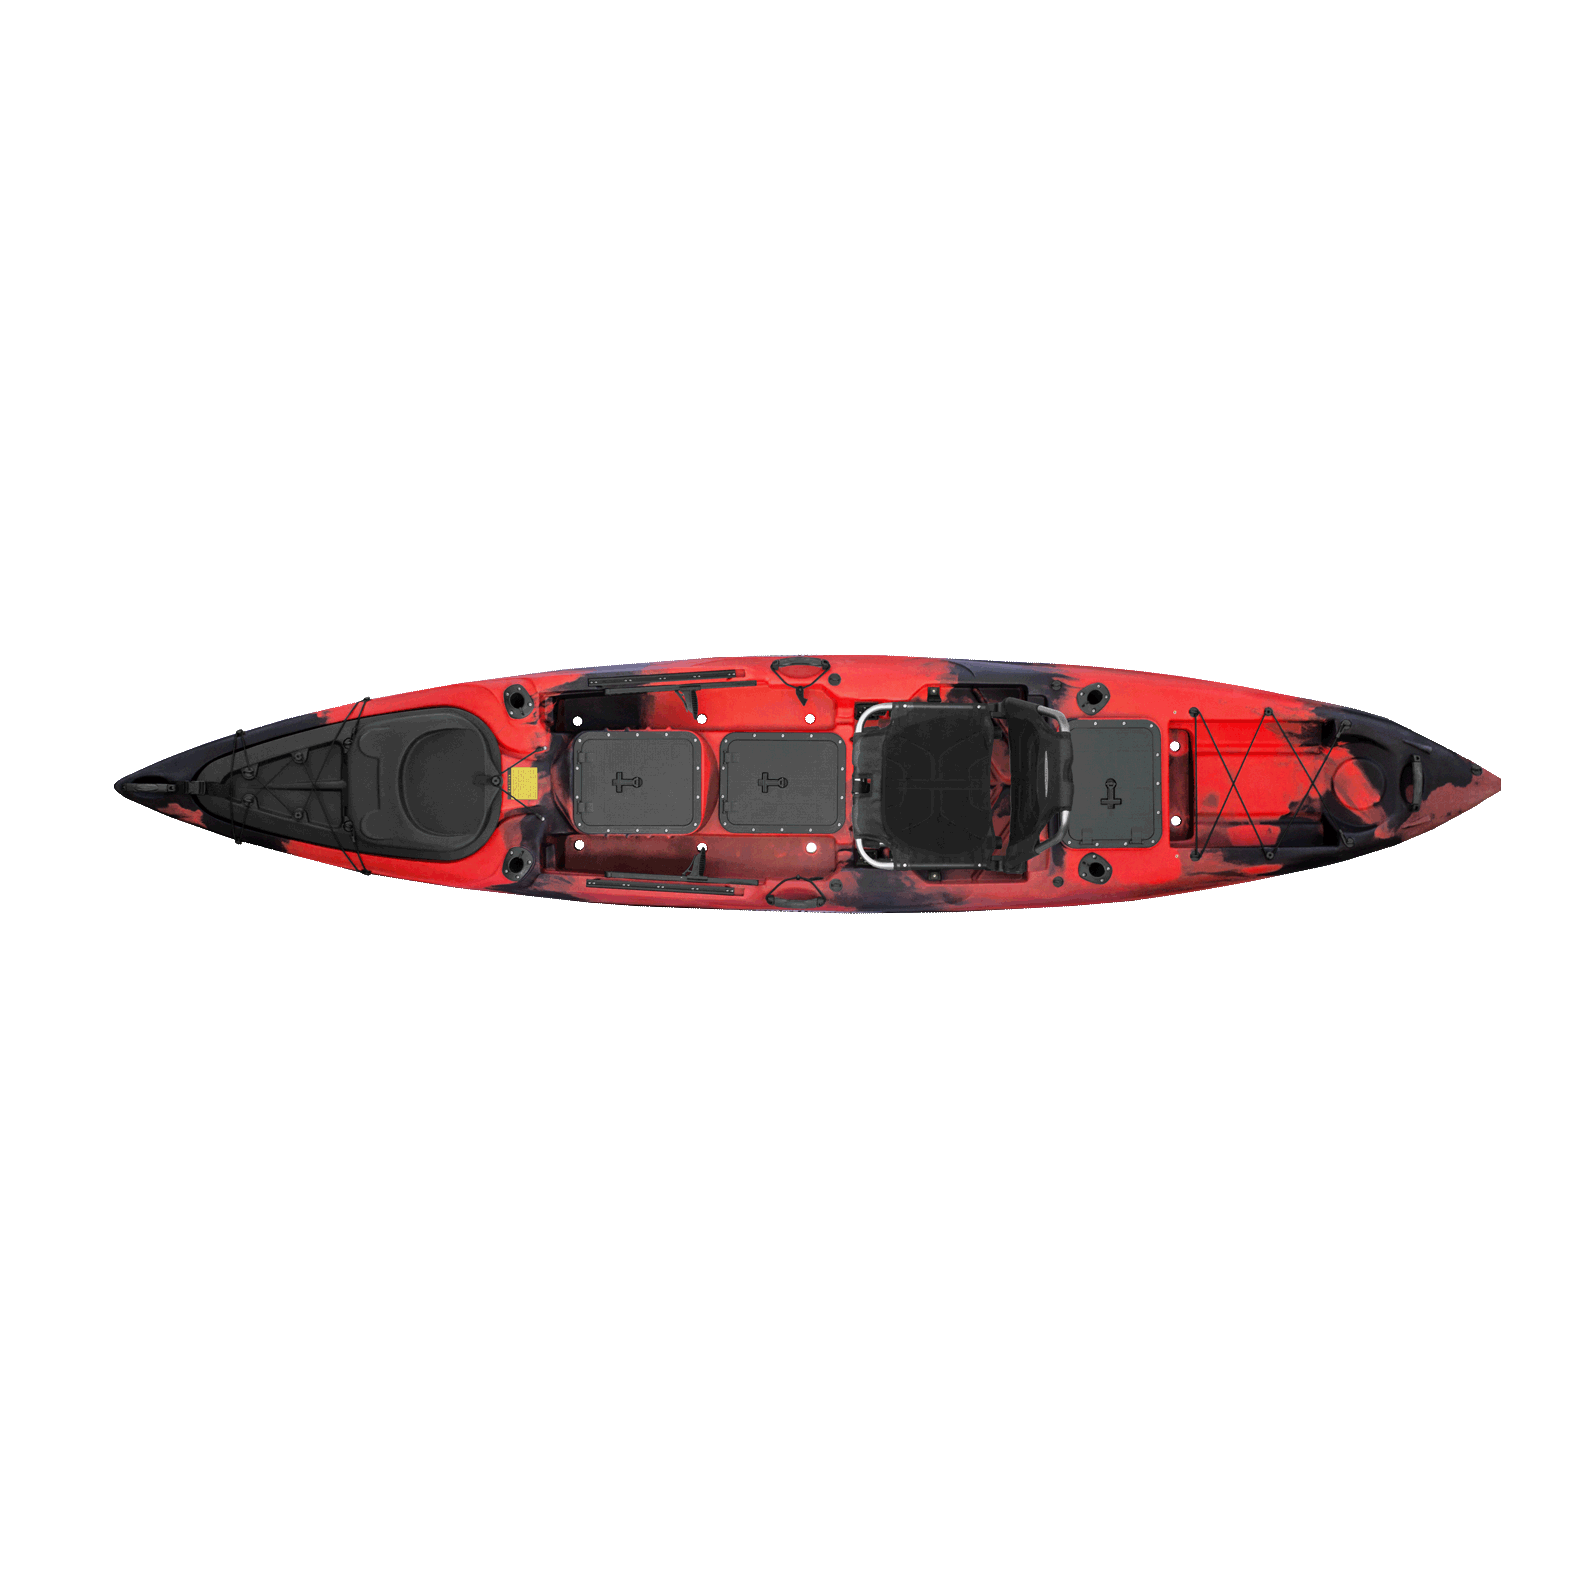 Malibu Kayaks X-Factor Fish & Dive Kayak 2018 | Camo Colors - Kayak Creek